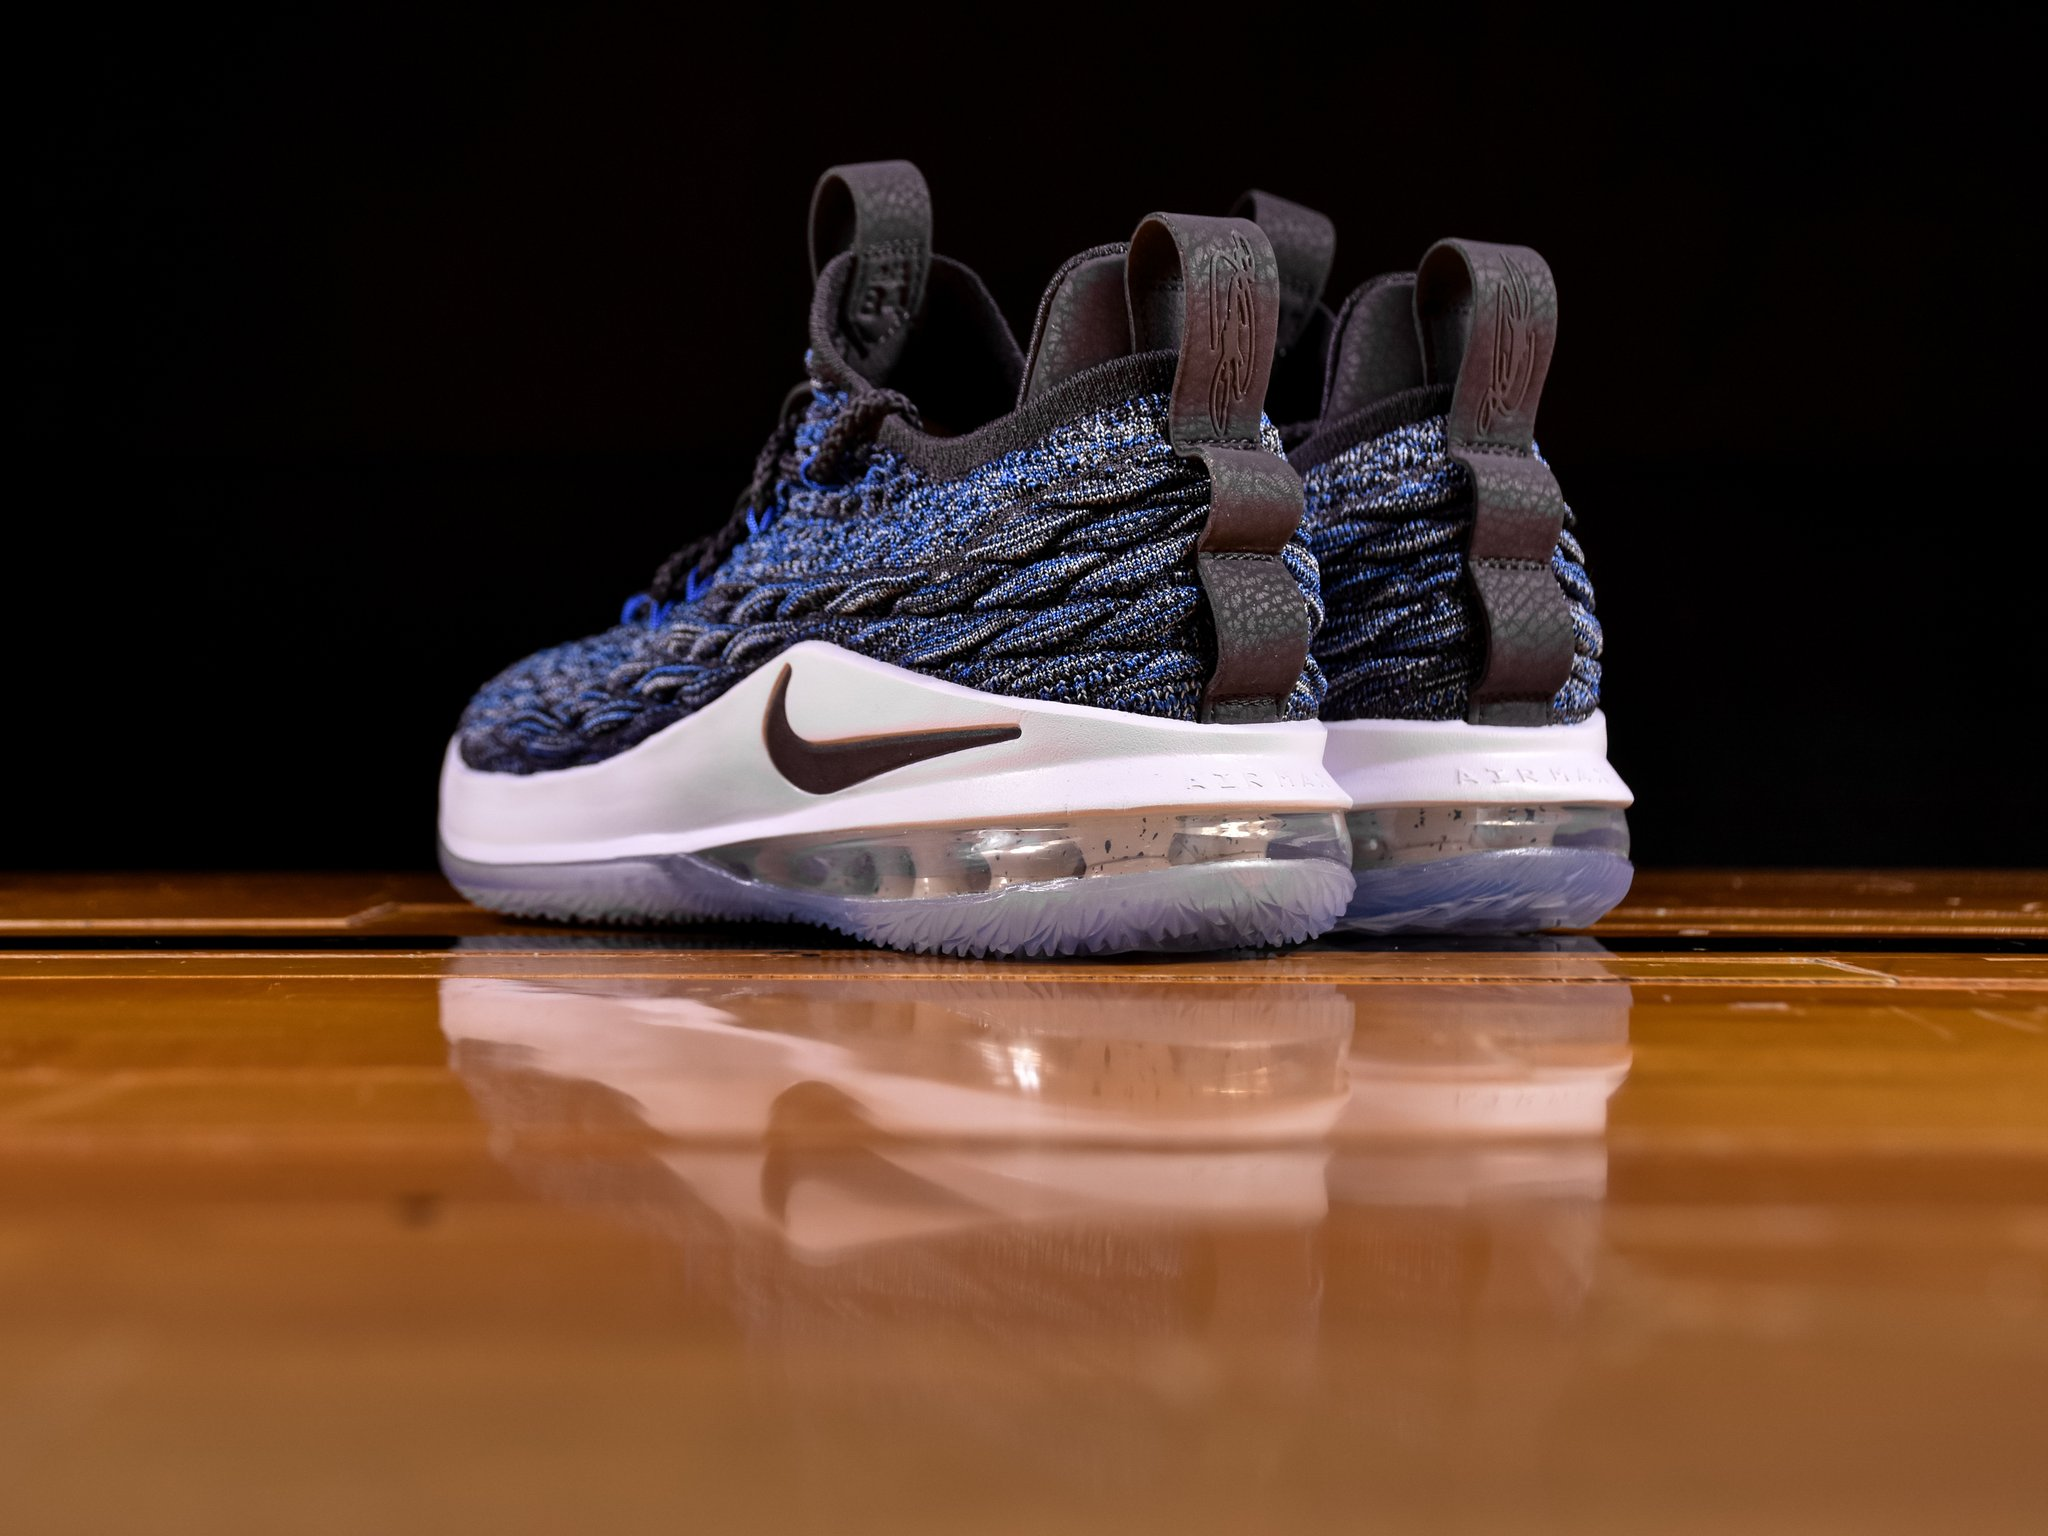 brand new 1e893 ec315 The Nike LeBron 15 Low 'Signal Blue' Release Date is ...